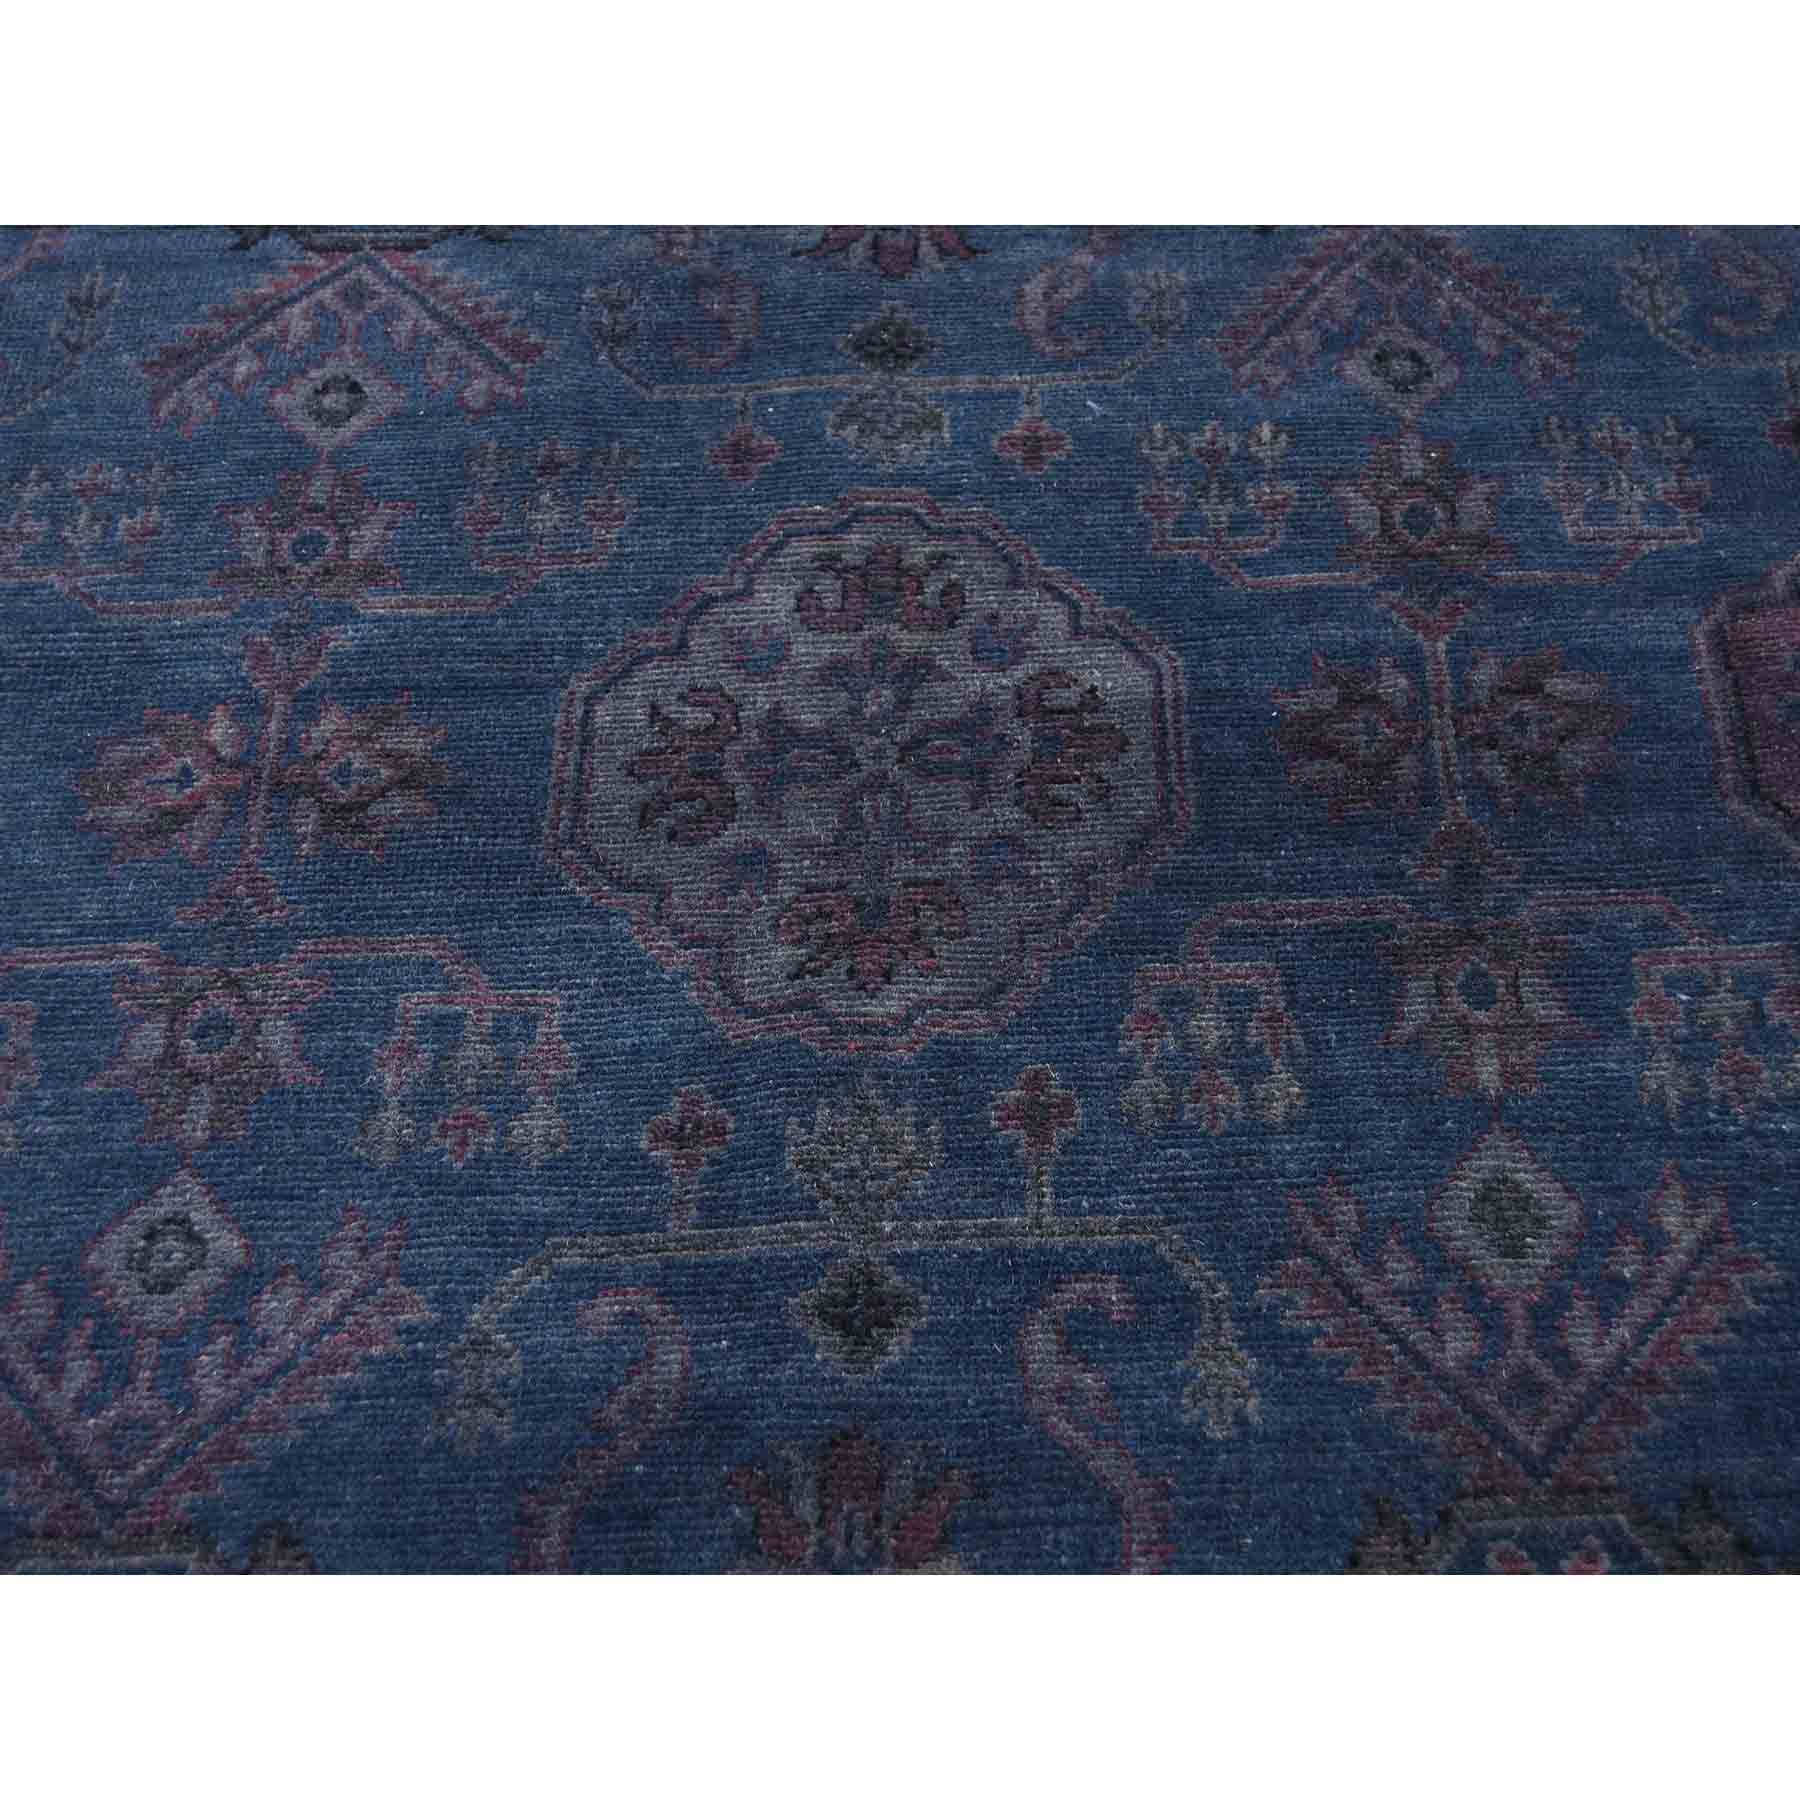 Overdyed-Vintage-Hand-Knotted-Rug-213700